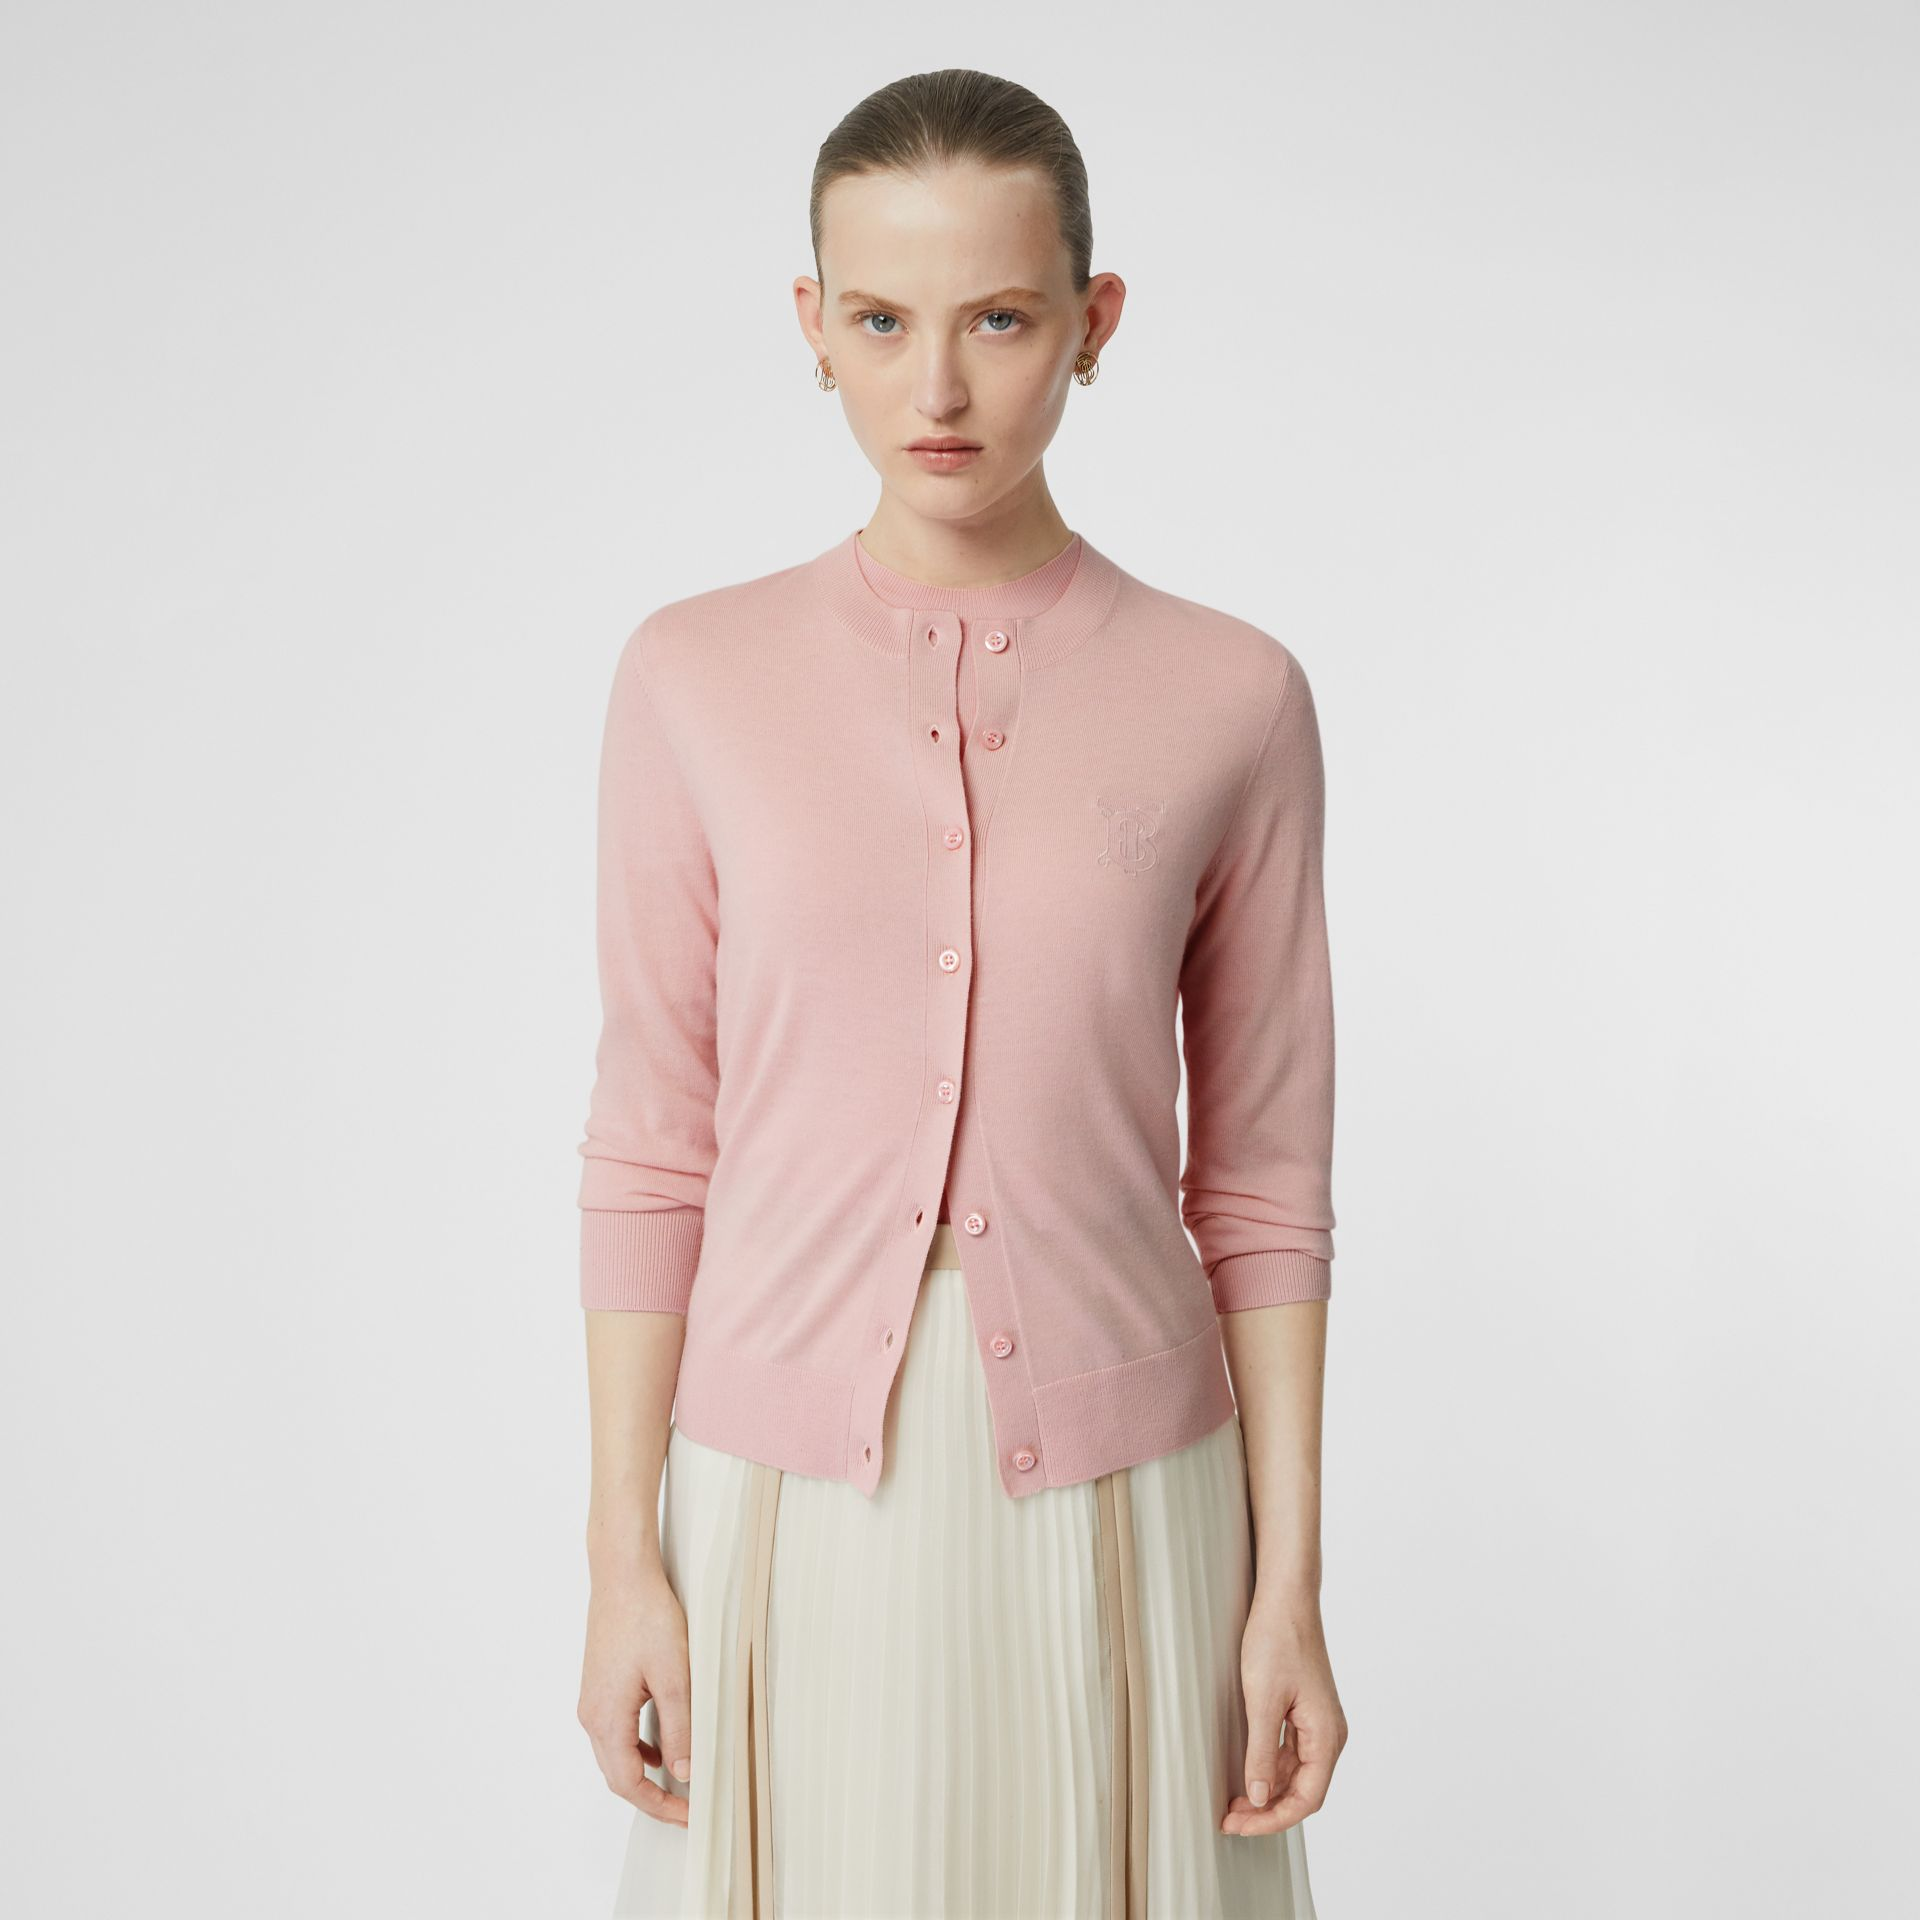 Monogram Motif Cashmere Cardigan in Pink - Women | Burberry United Kingdom - gallery image 3